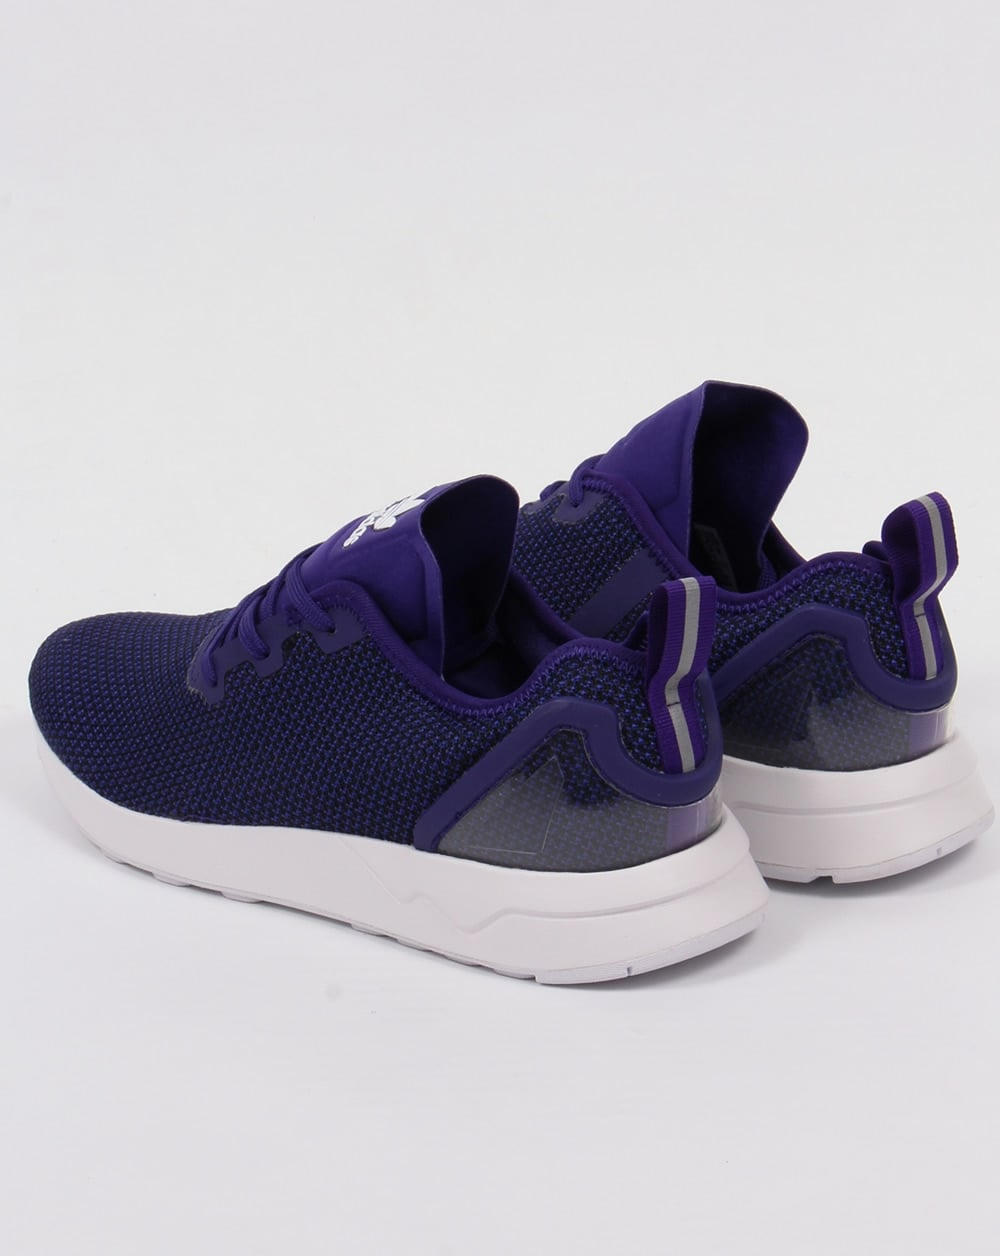 hot sale online 72866 fdbfc Adidas ZX Flux Racer Asym Trainers Purple/Black/White